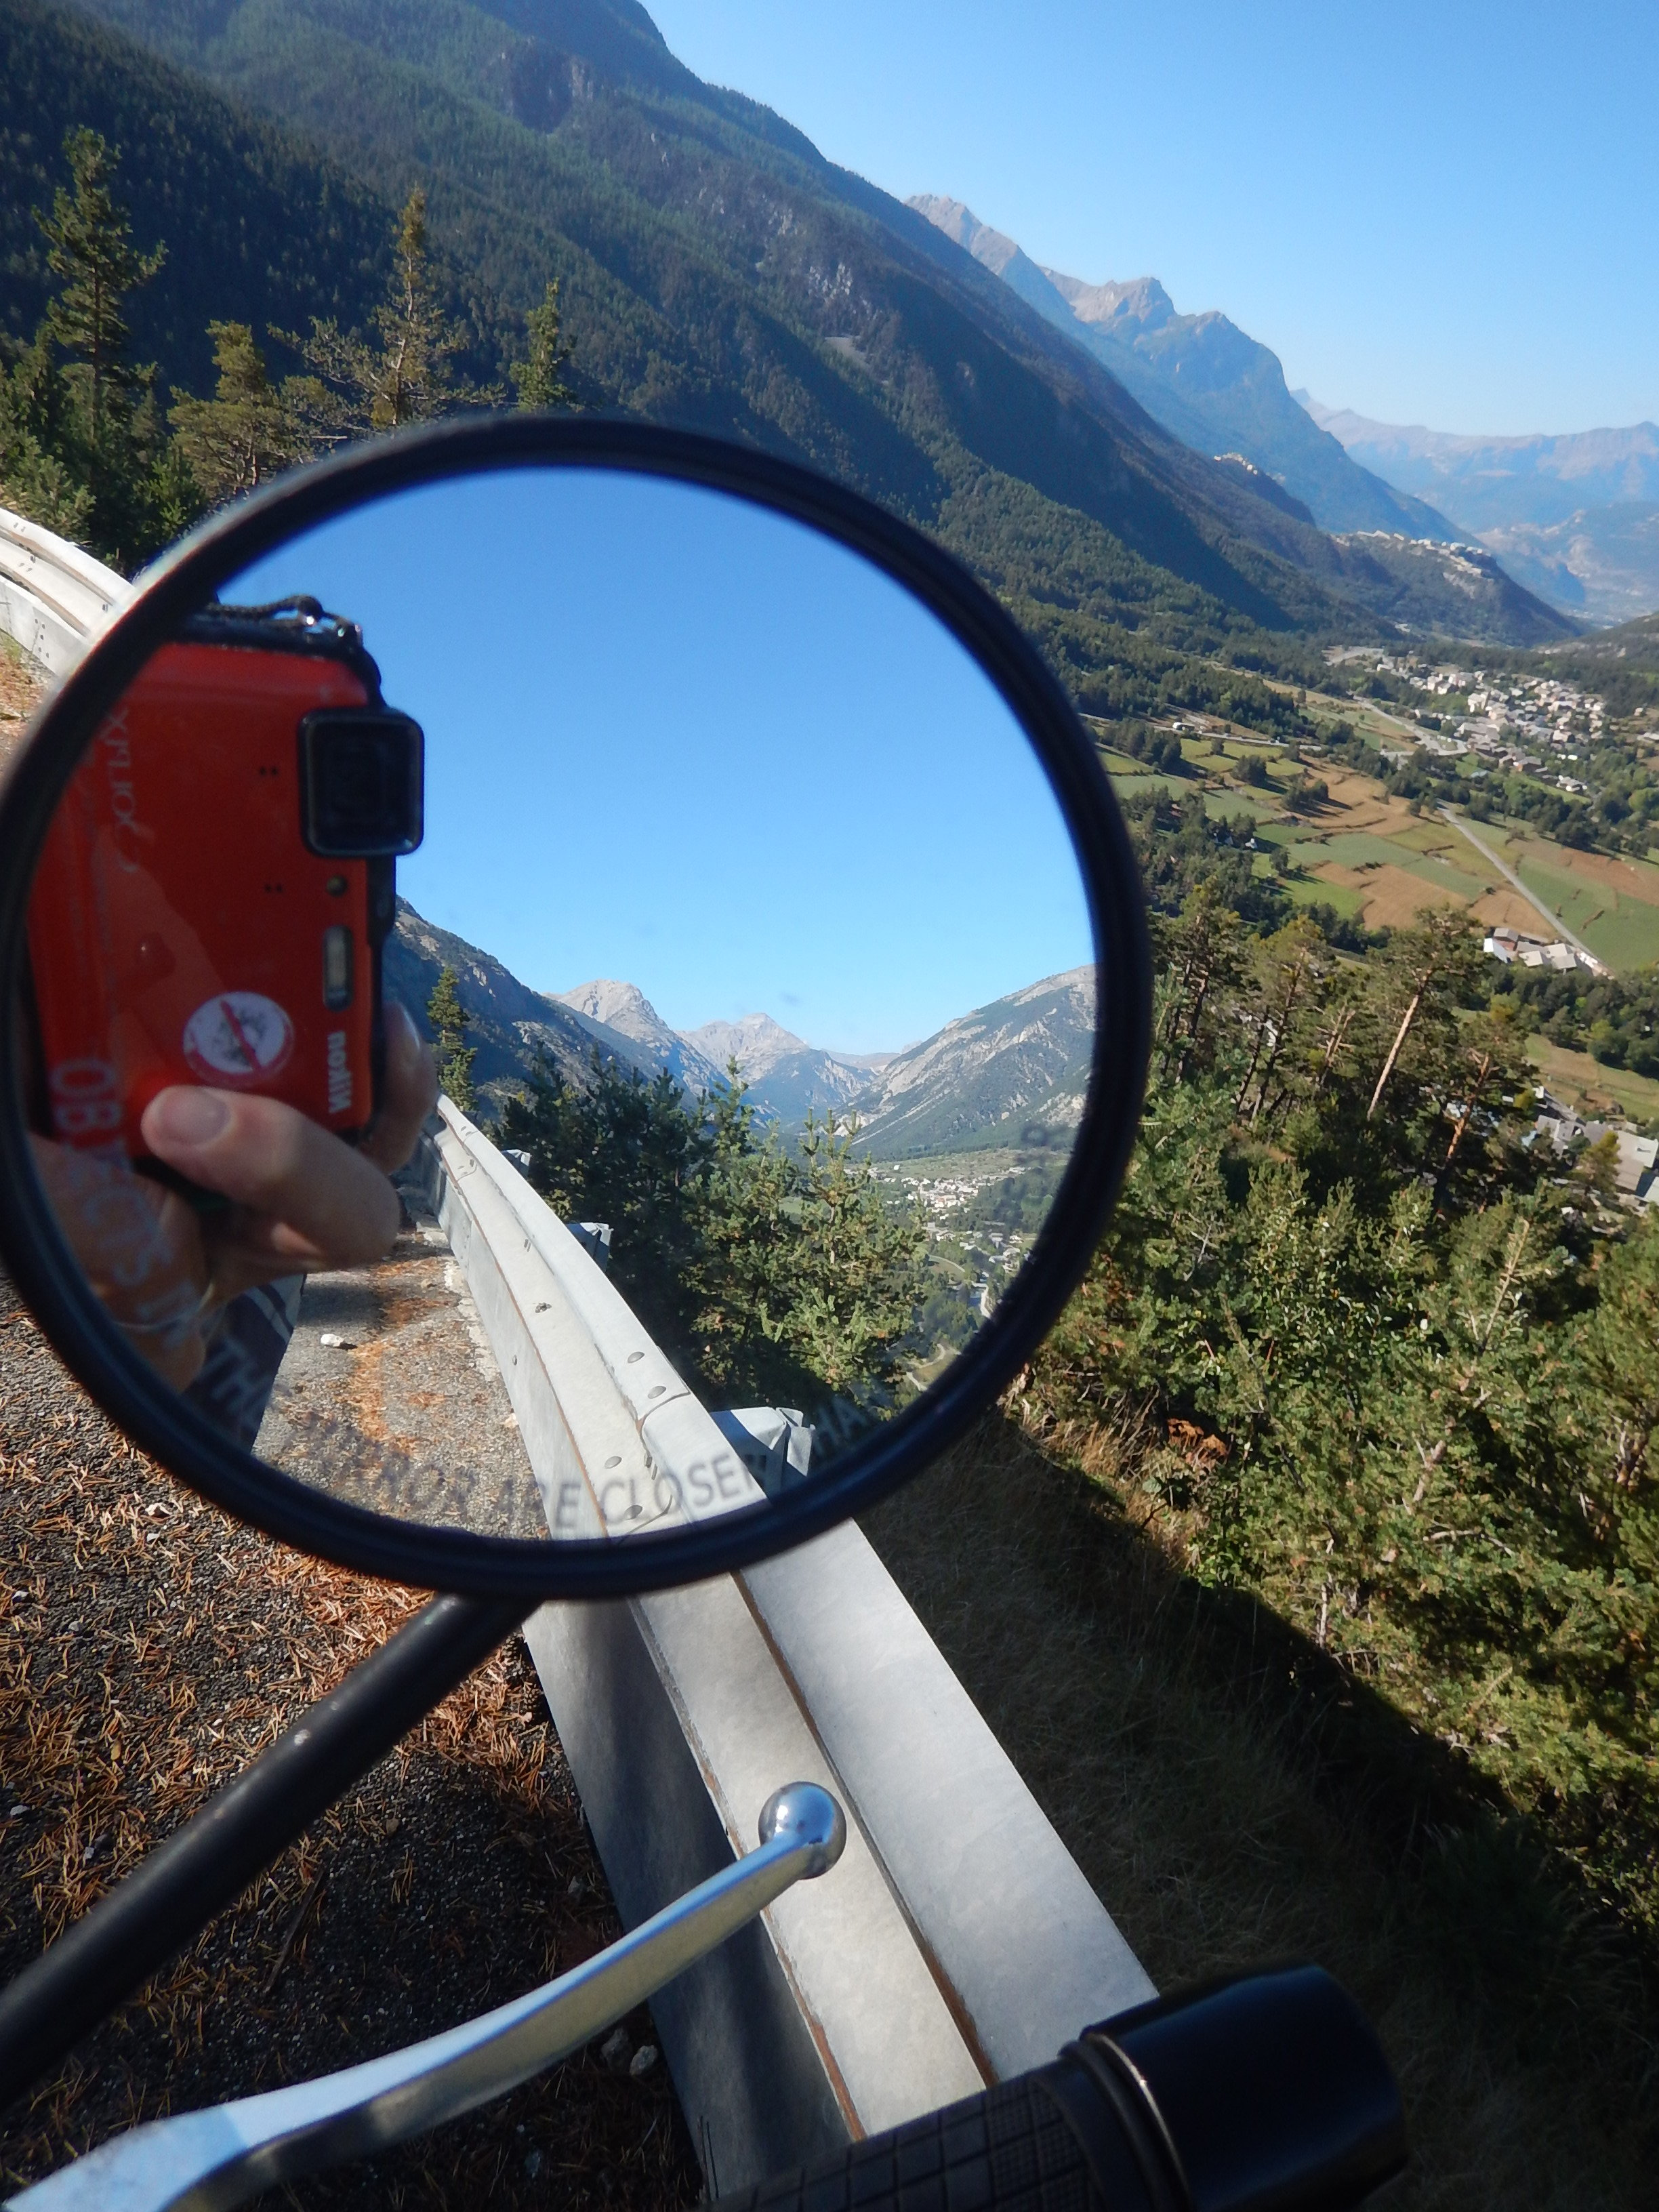 mountains everywhere, on all sides and even in the mirror.